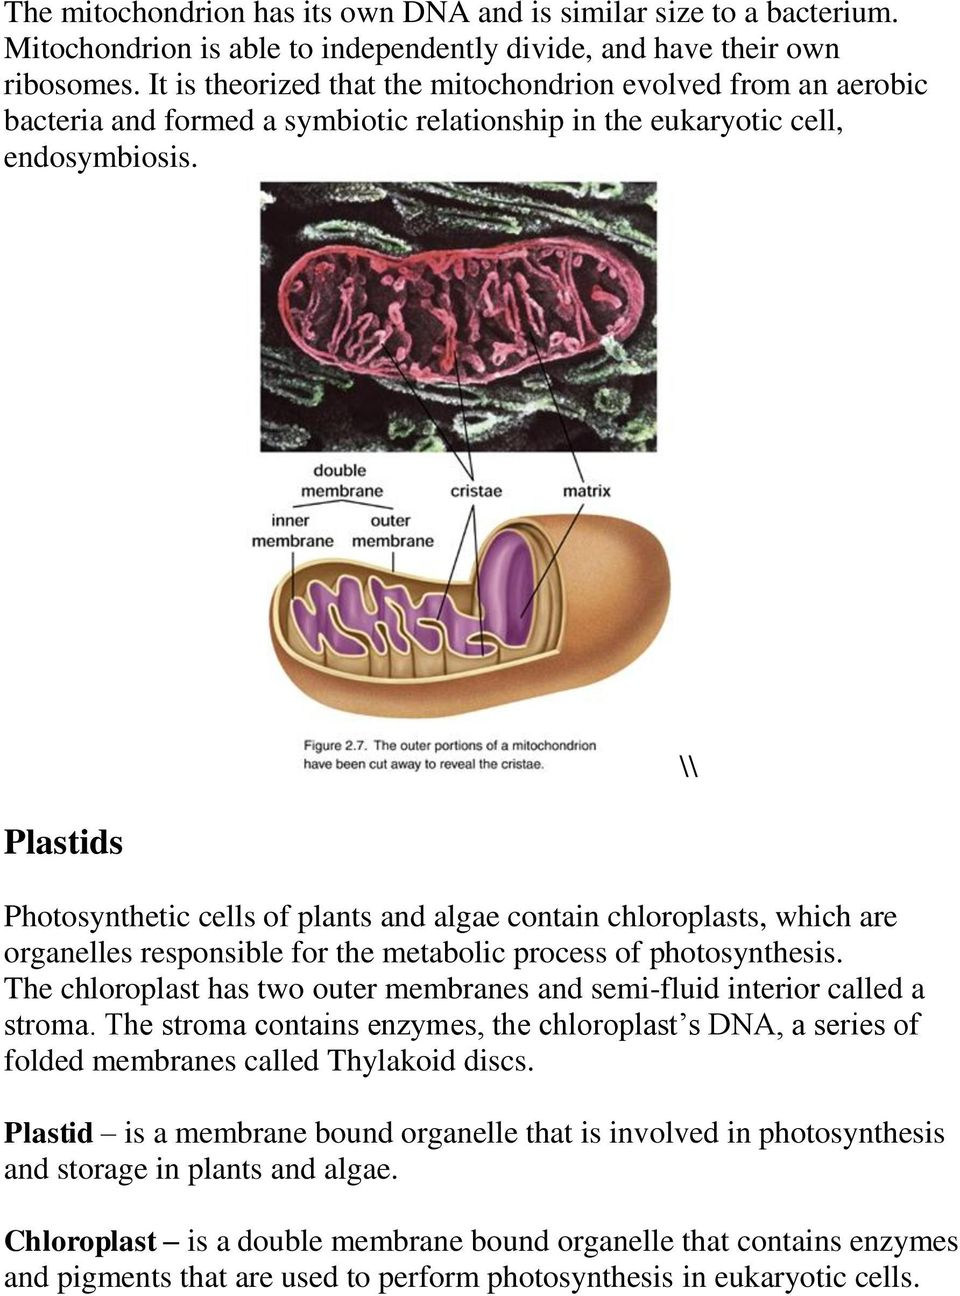 Plastids Photosynthetic cells of plants and algae contain chloroplasts, which are organelles responsible for the metabolic process of photosynthesis.